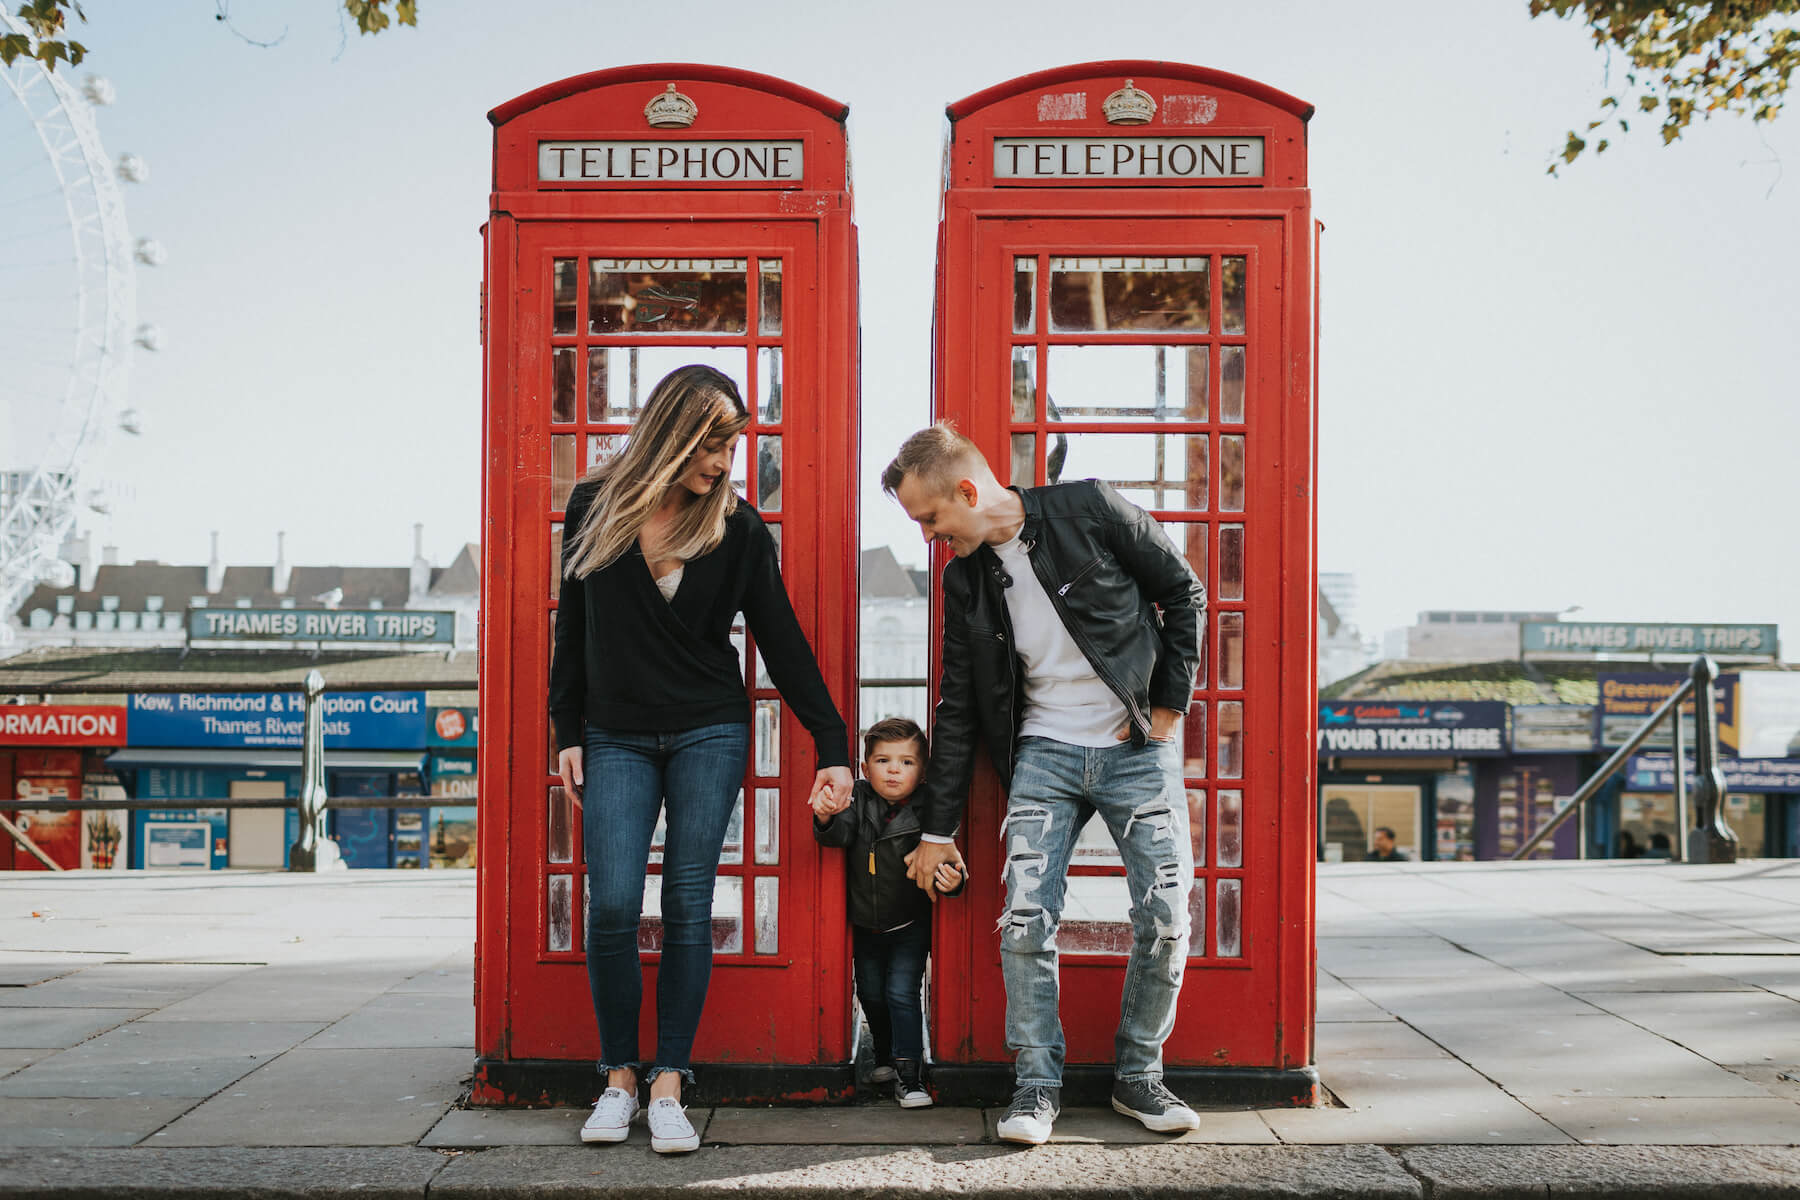 a family of three standing by a red phone booth in London, England